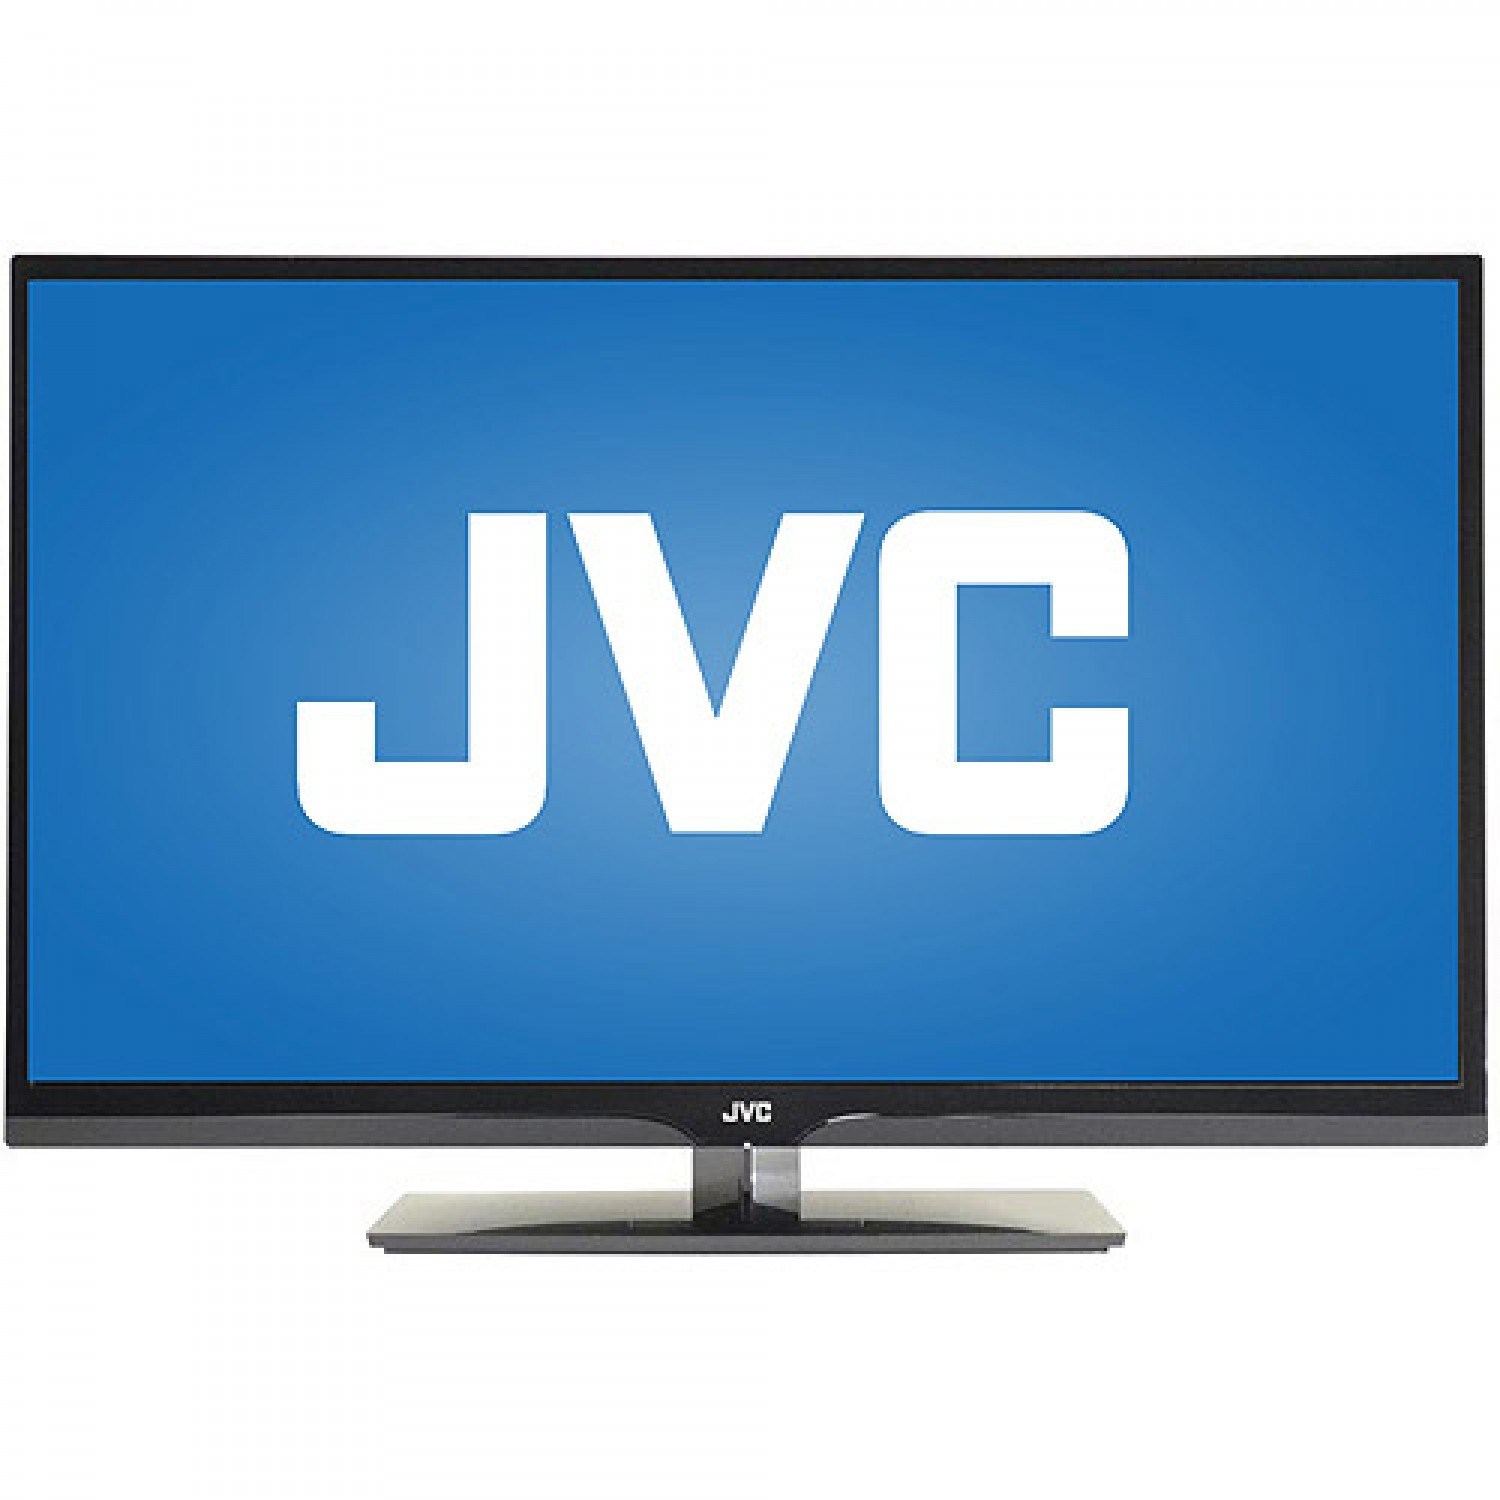 Jvc Auto Electrical Wiring Diagram Trane Xr80 New 32 U0026quot 720p Led Tv